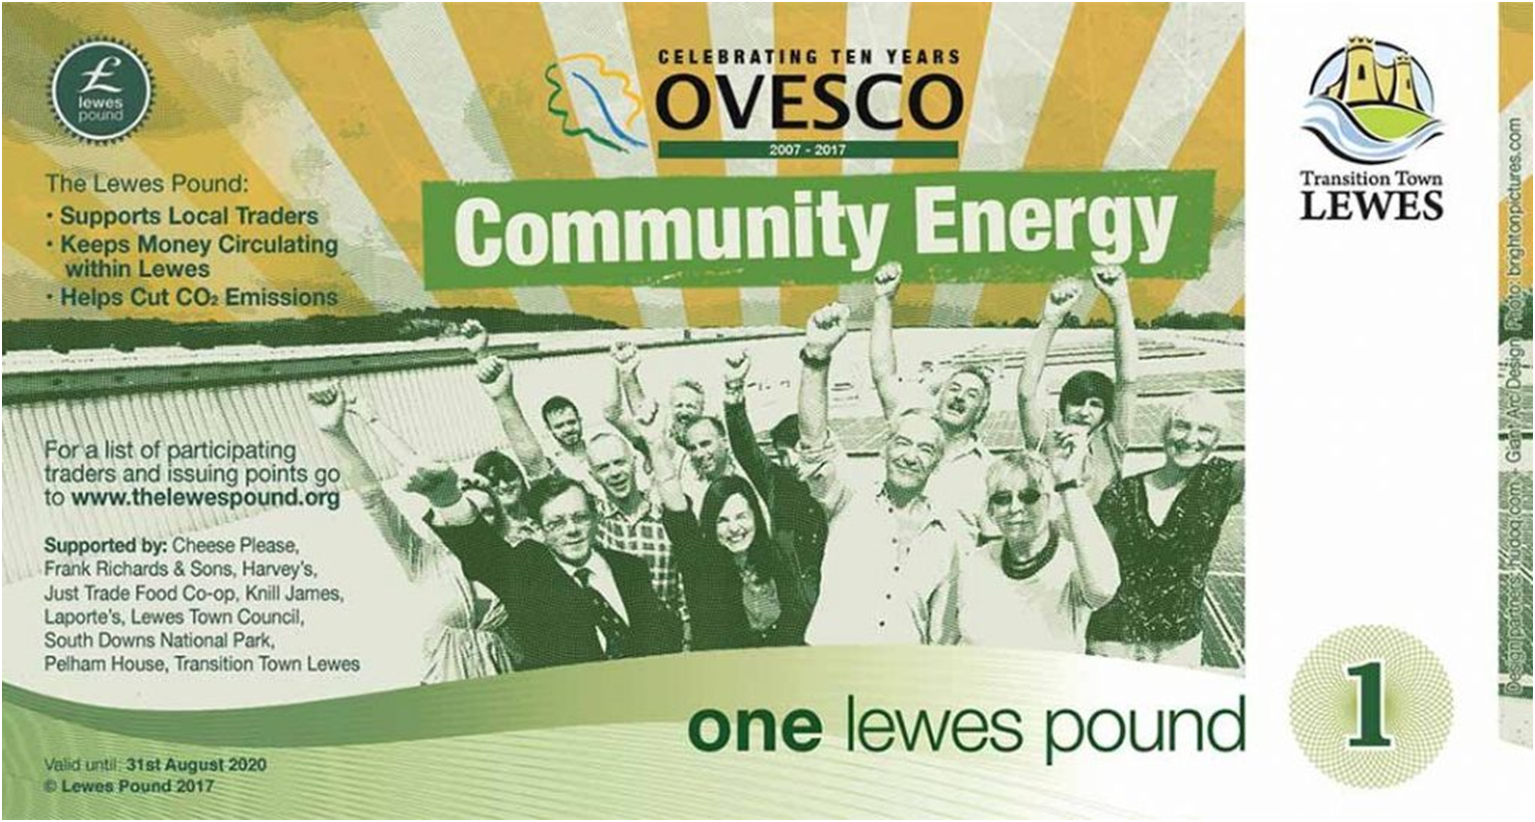 Latest addition of the Lewes Pounds celebrating Ovesco's 10th Birthday